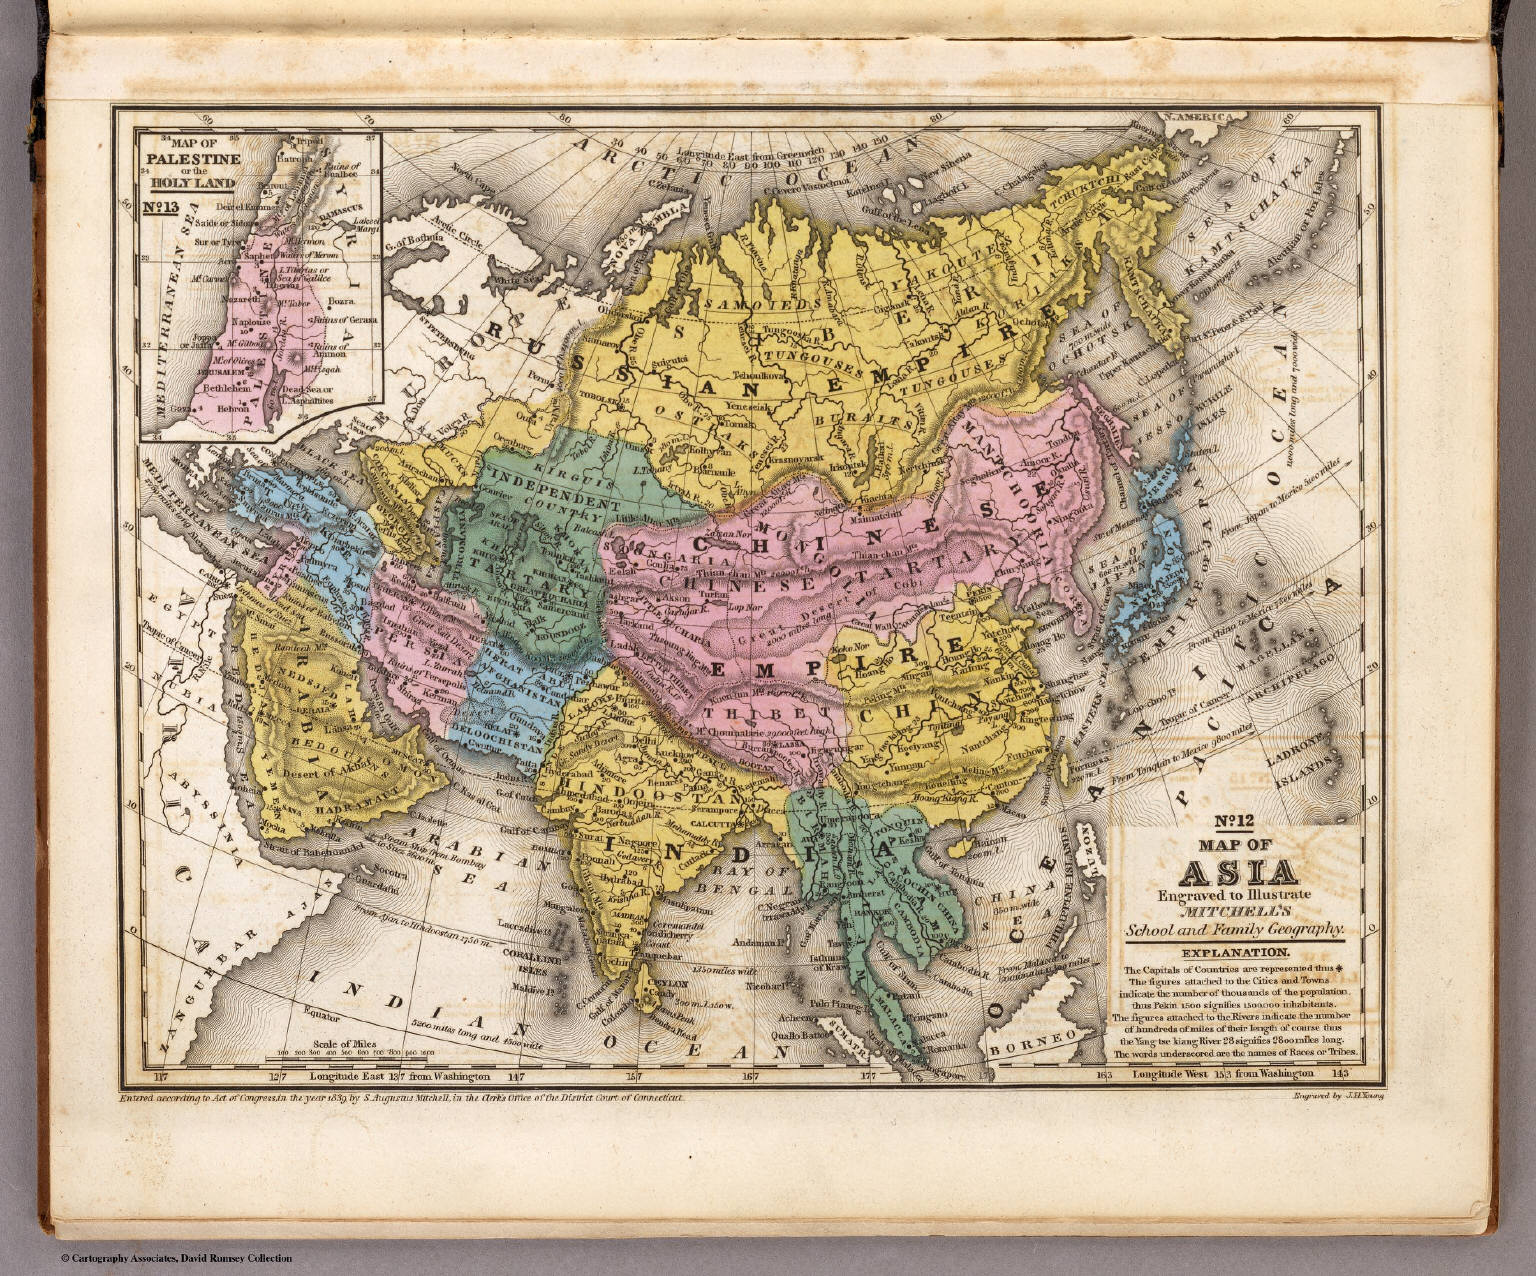 Map of Asia David Rumsey Historical Map Collection – Full Map of Asia